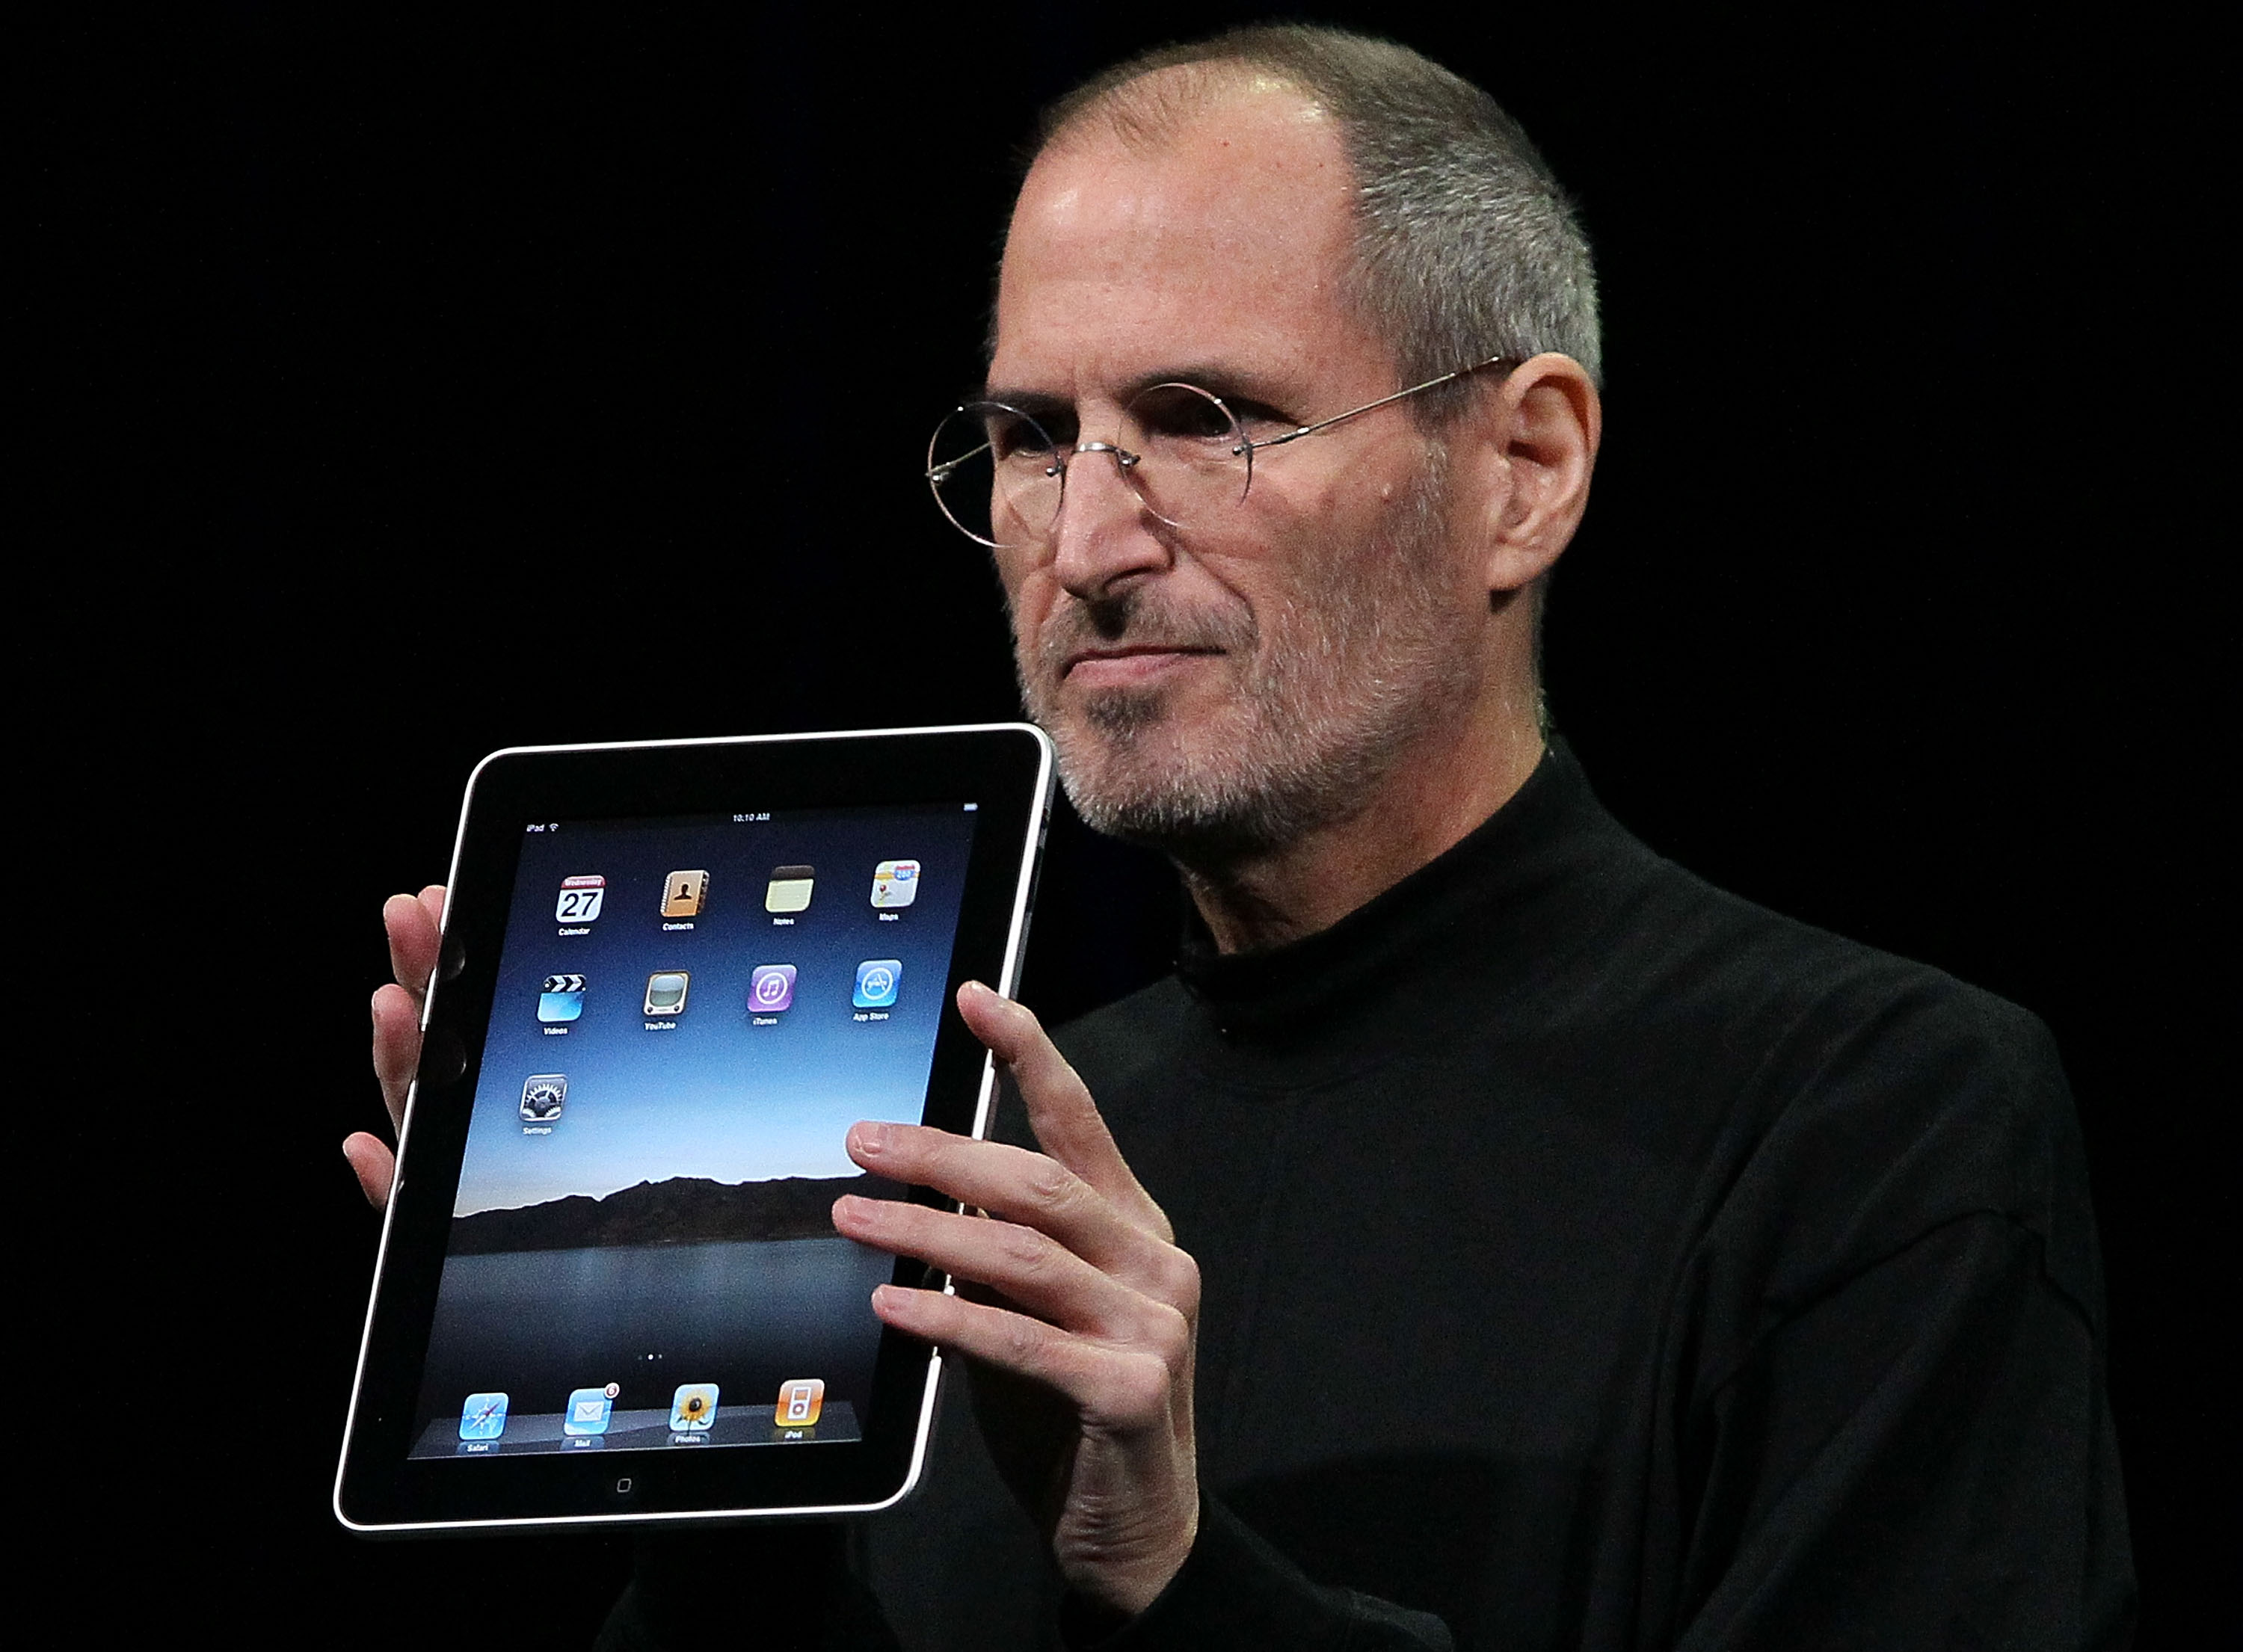 Apple Inc. CEO Steve Jobs holds up the new iPad as he speaks during an Apple Special Event at Yerba Buena Center for the Arts Jan. 27, 2010 in San Francisco, California.